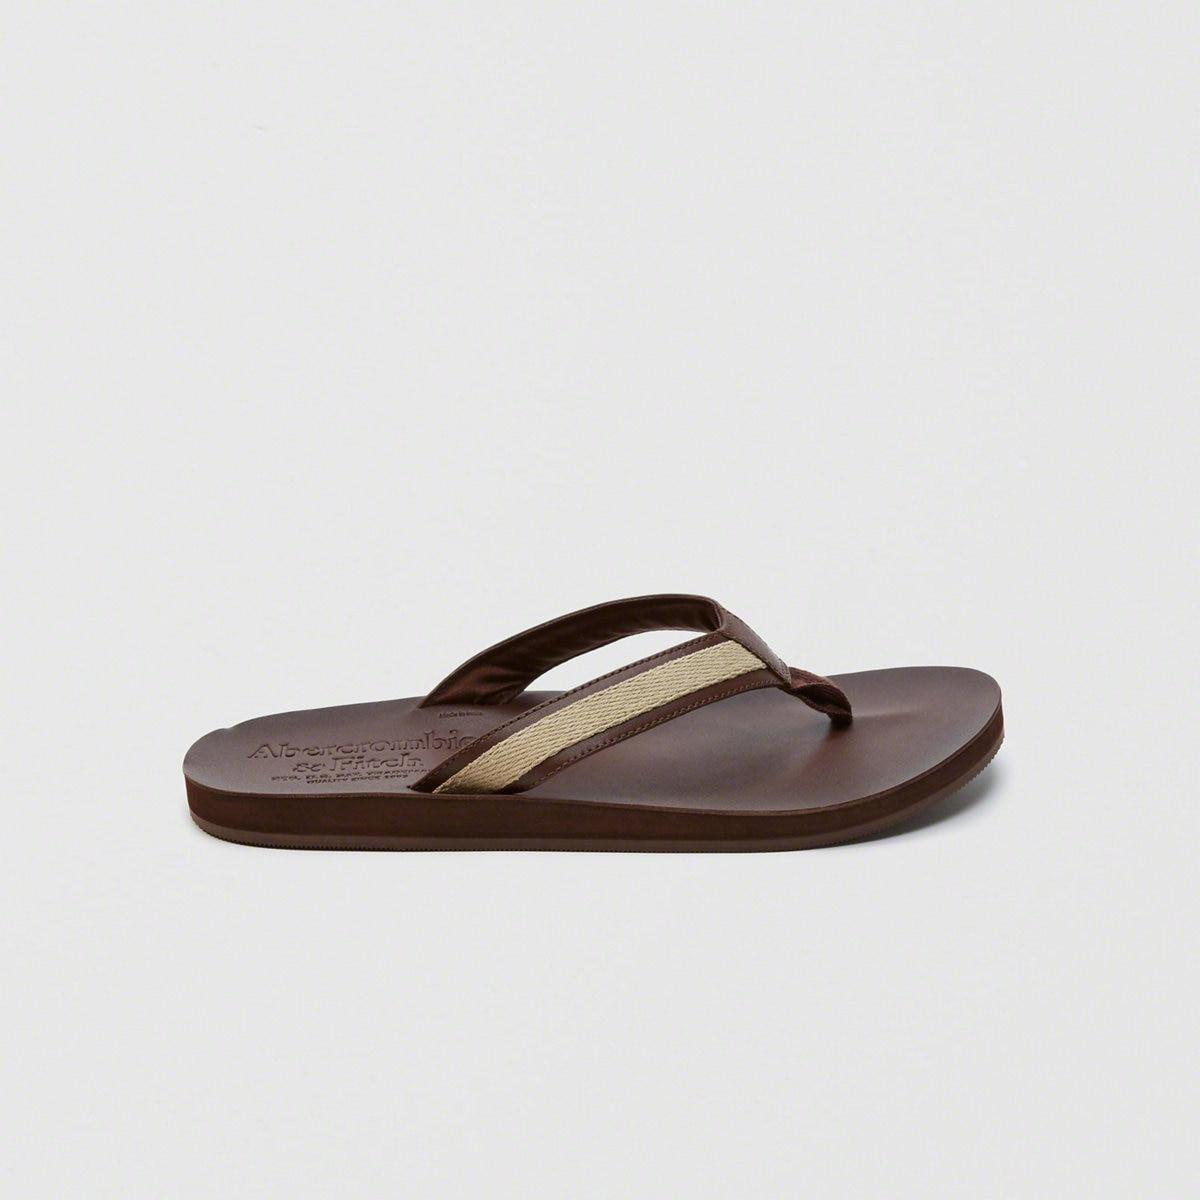 6eb39c0419c83 Lyst - Abercrombie   Fitch Leather Flip Flops in Brown for Men